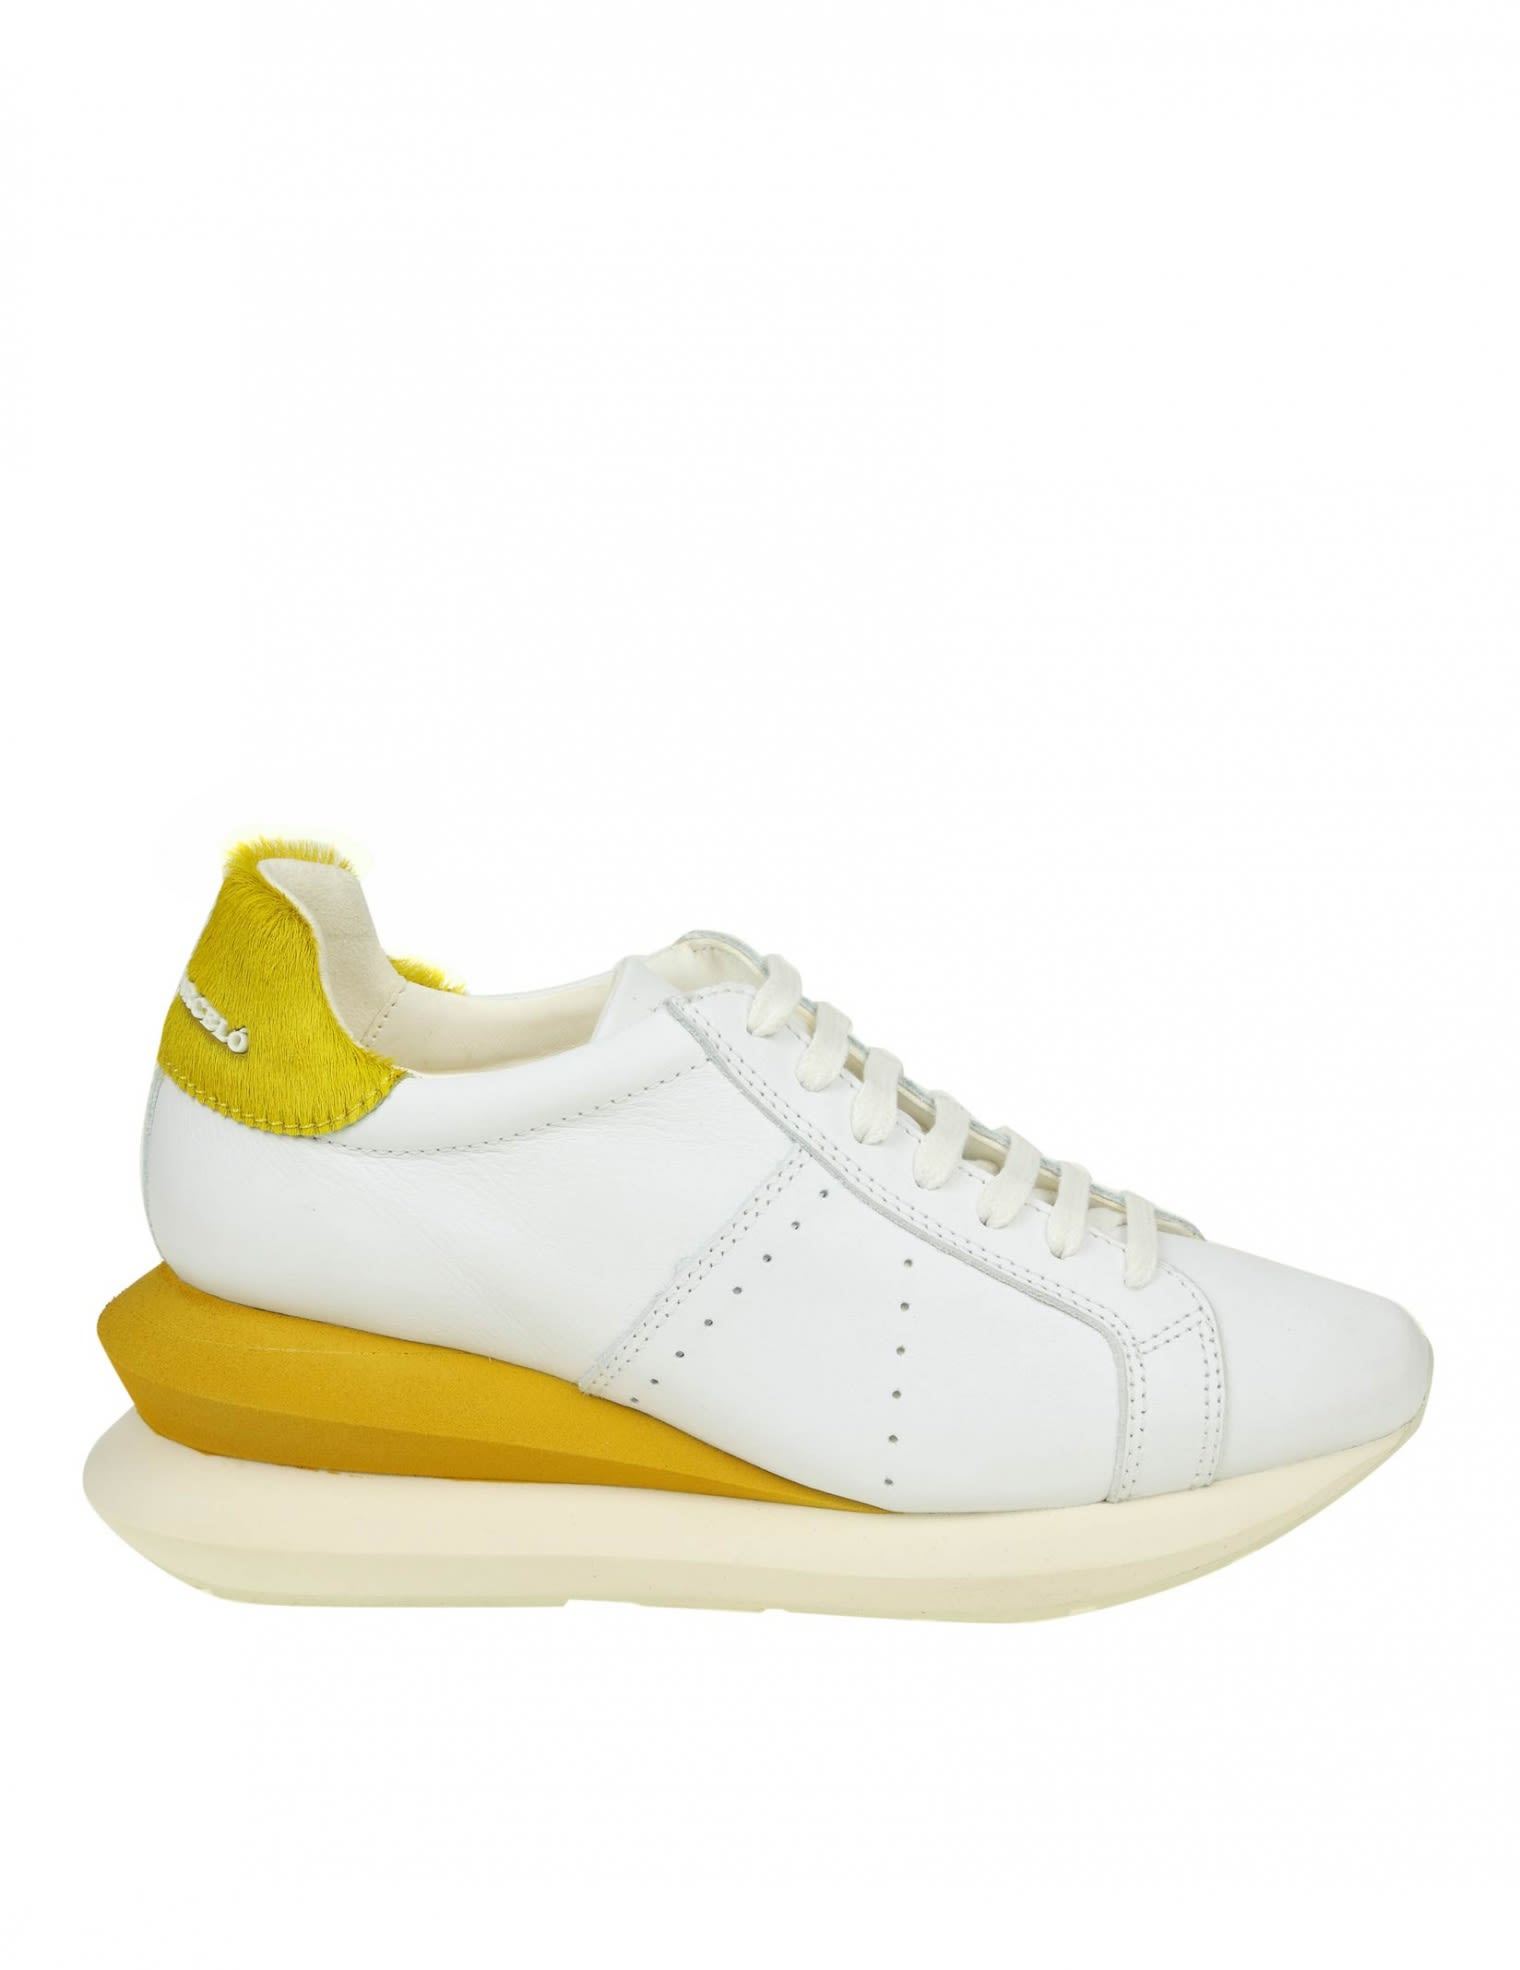 Manuel Barcelo' Sneakers Shoe In White Leather, White/Yellow